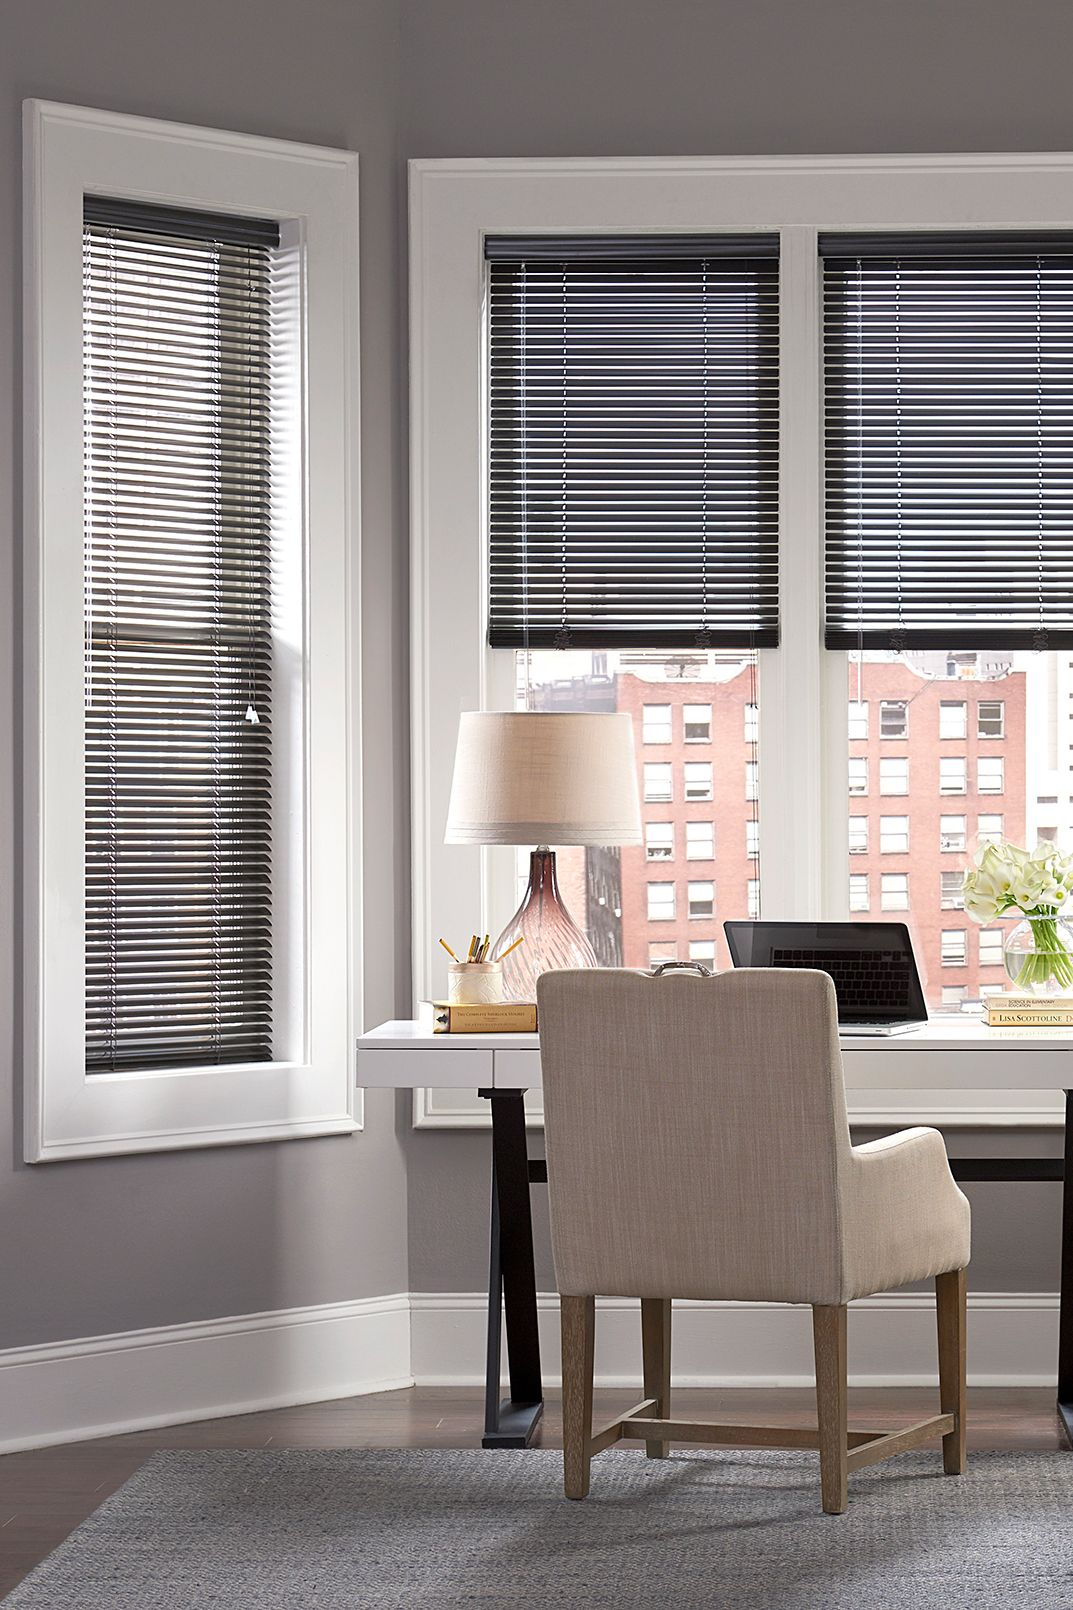 The Ultimate Guide To Blinds For Bay Windows Blinds Com Living Room Blinds Blinds For Windows Bay Window Blinds